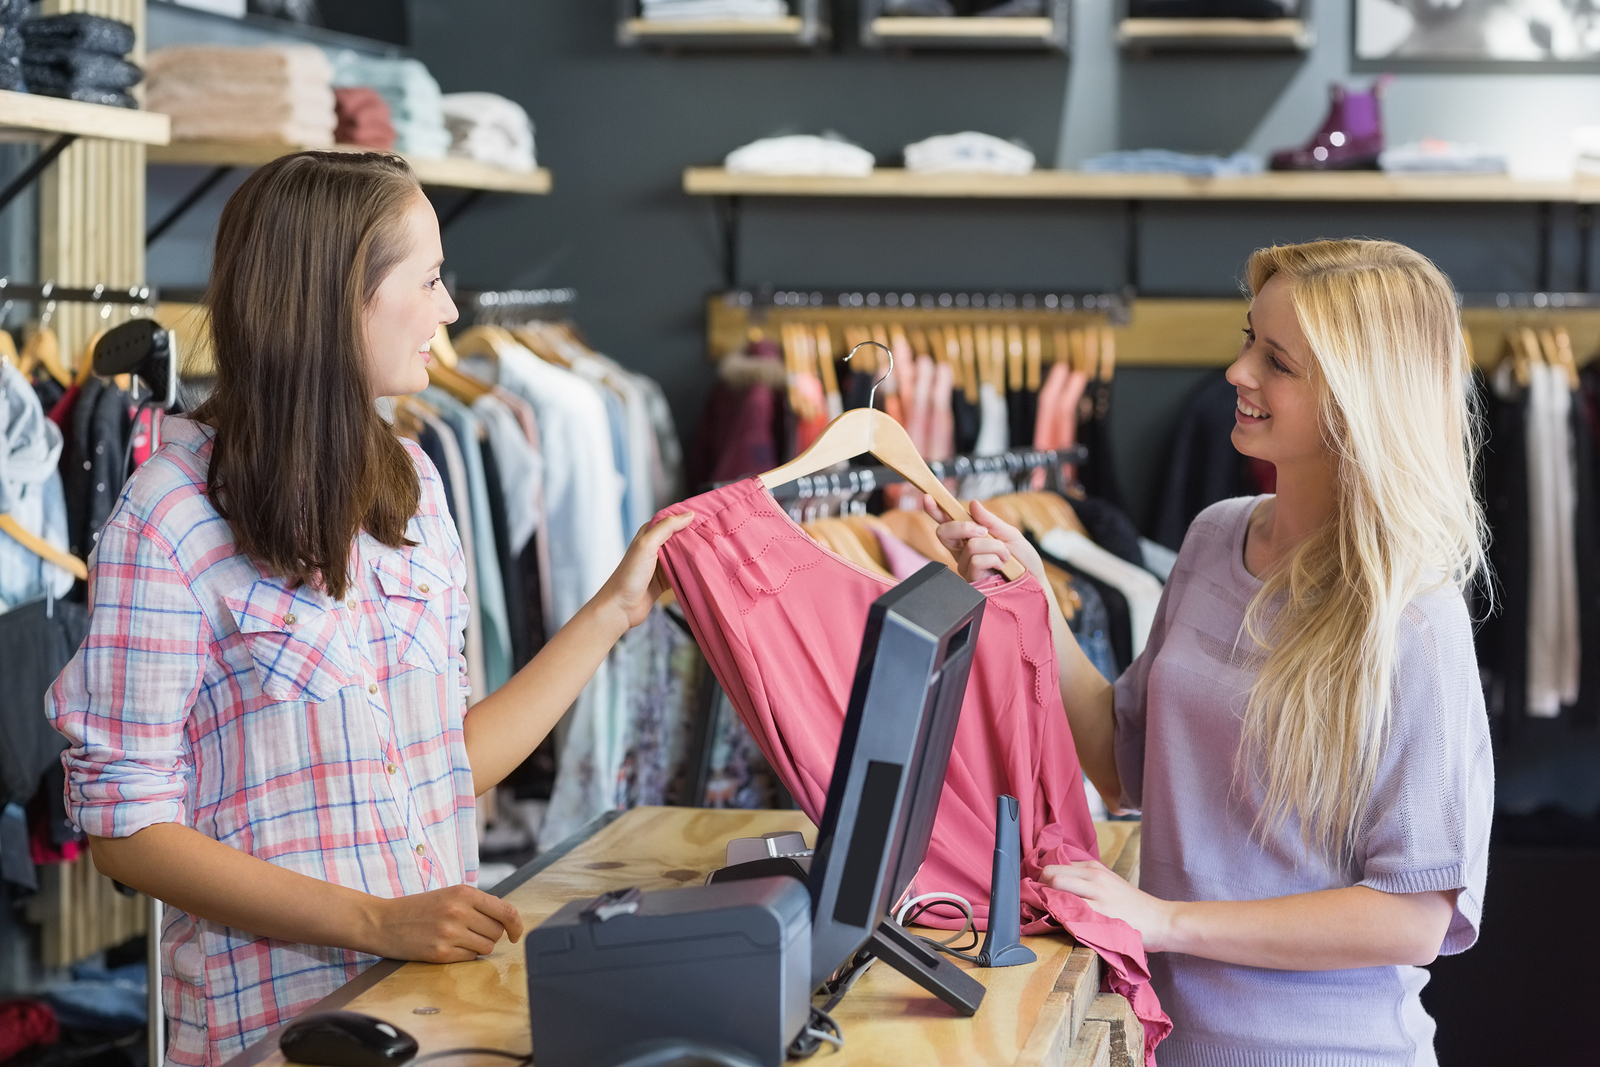 Ahead of the Competition: Most Hirable Qualities in Retail